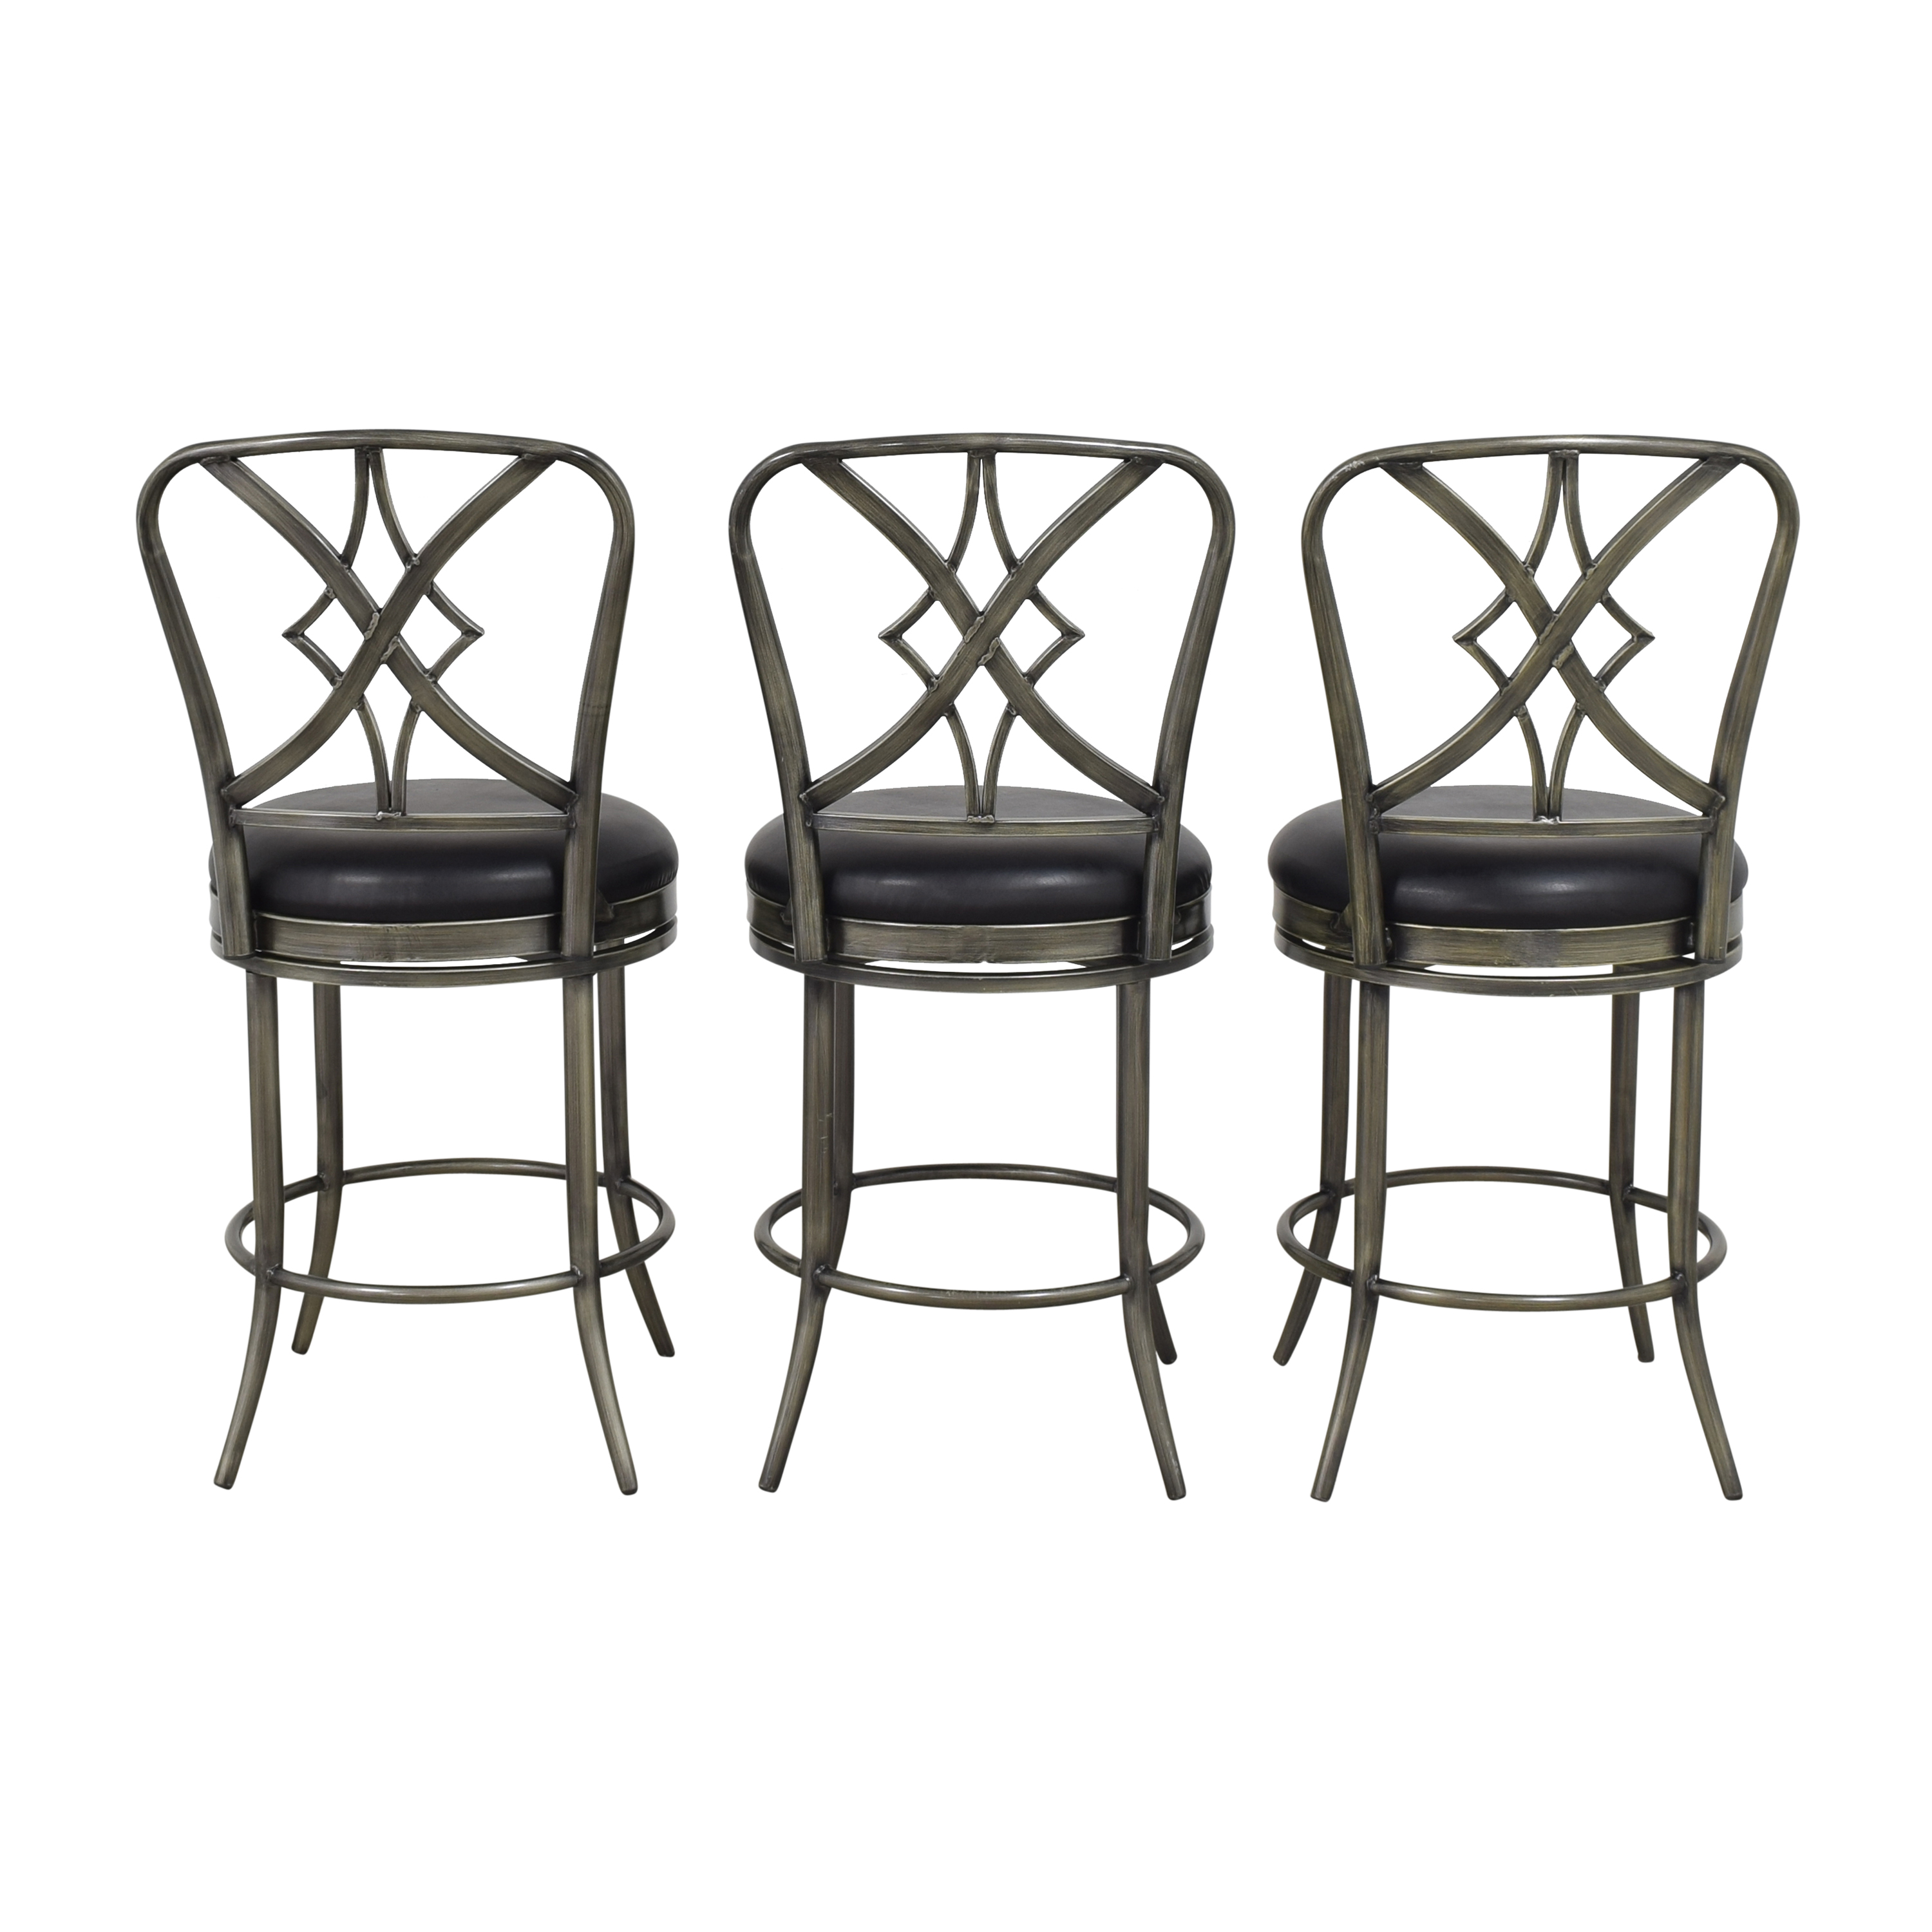 Hillsdale Furniture Hillsdale Furniture Swivel Bar Stools second hand